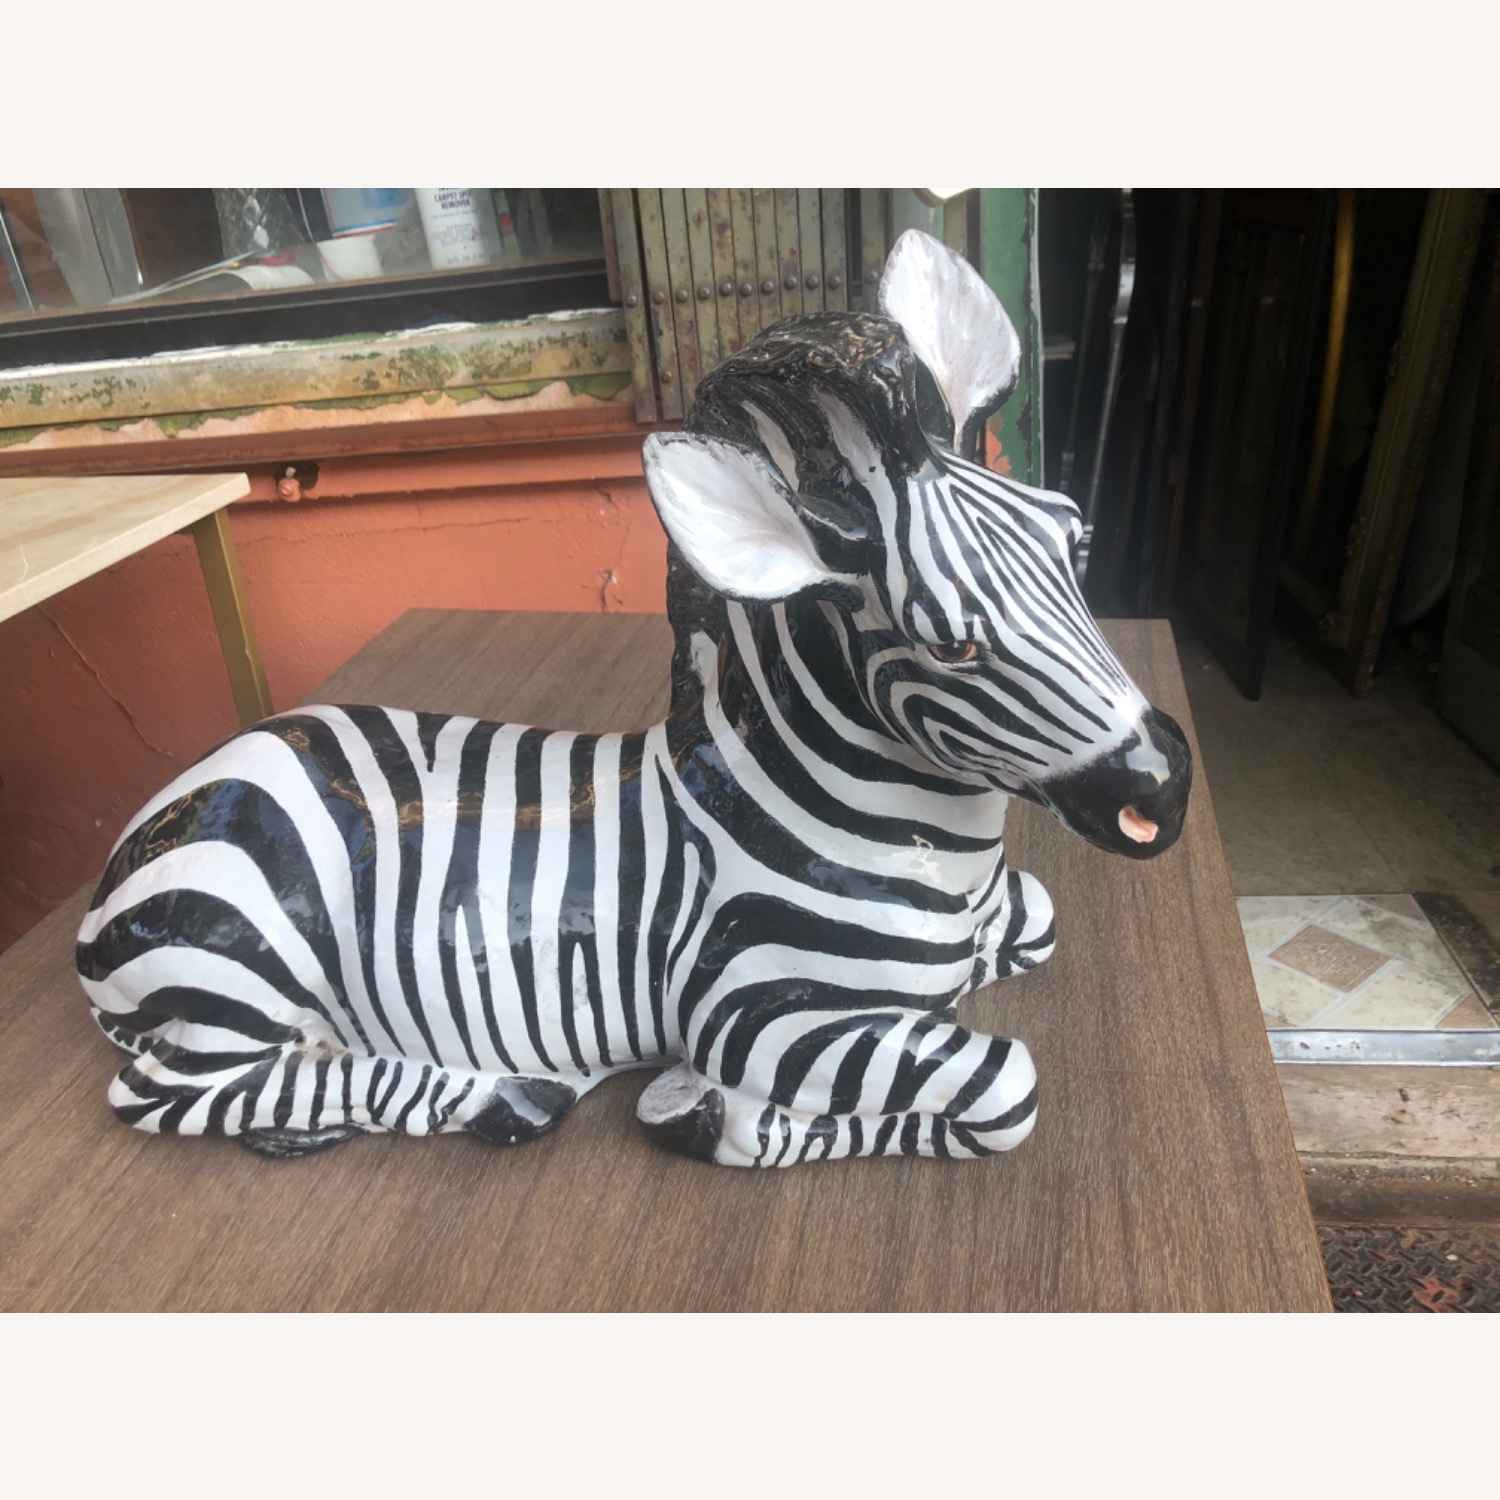 Vintage 1960s Ceramic Zebra Made in Italy - image-2